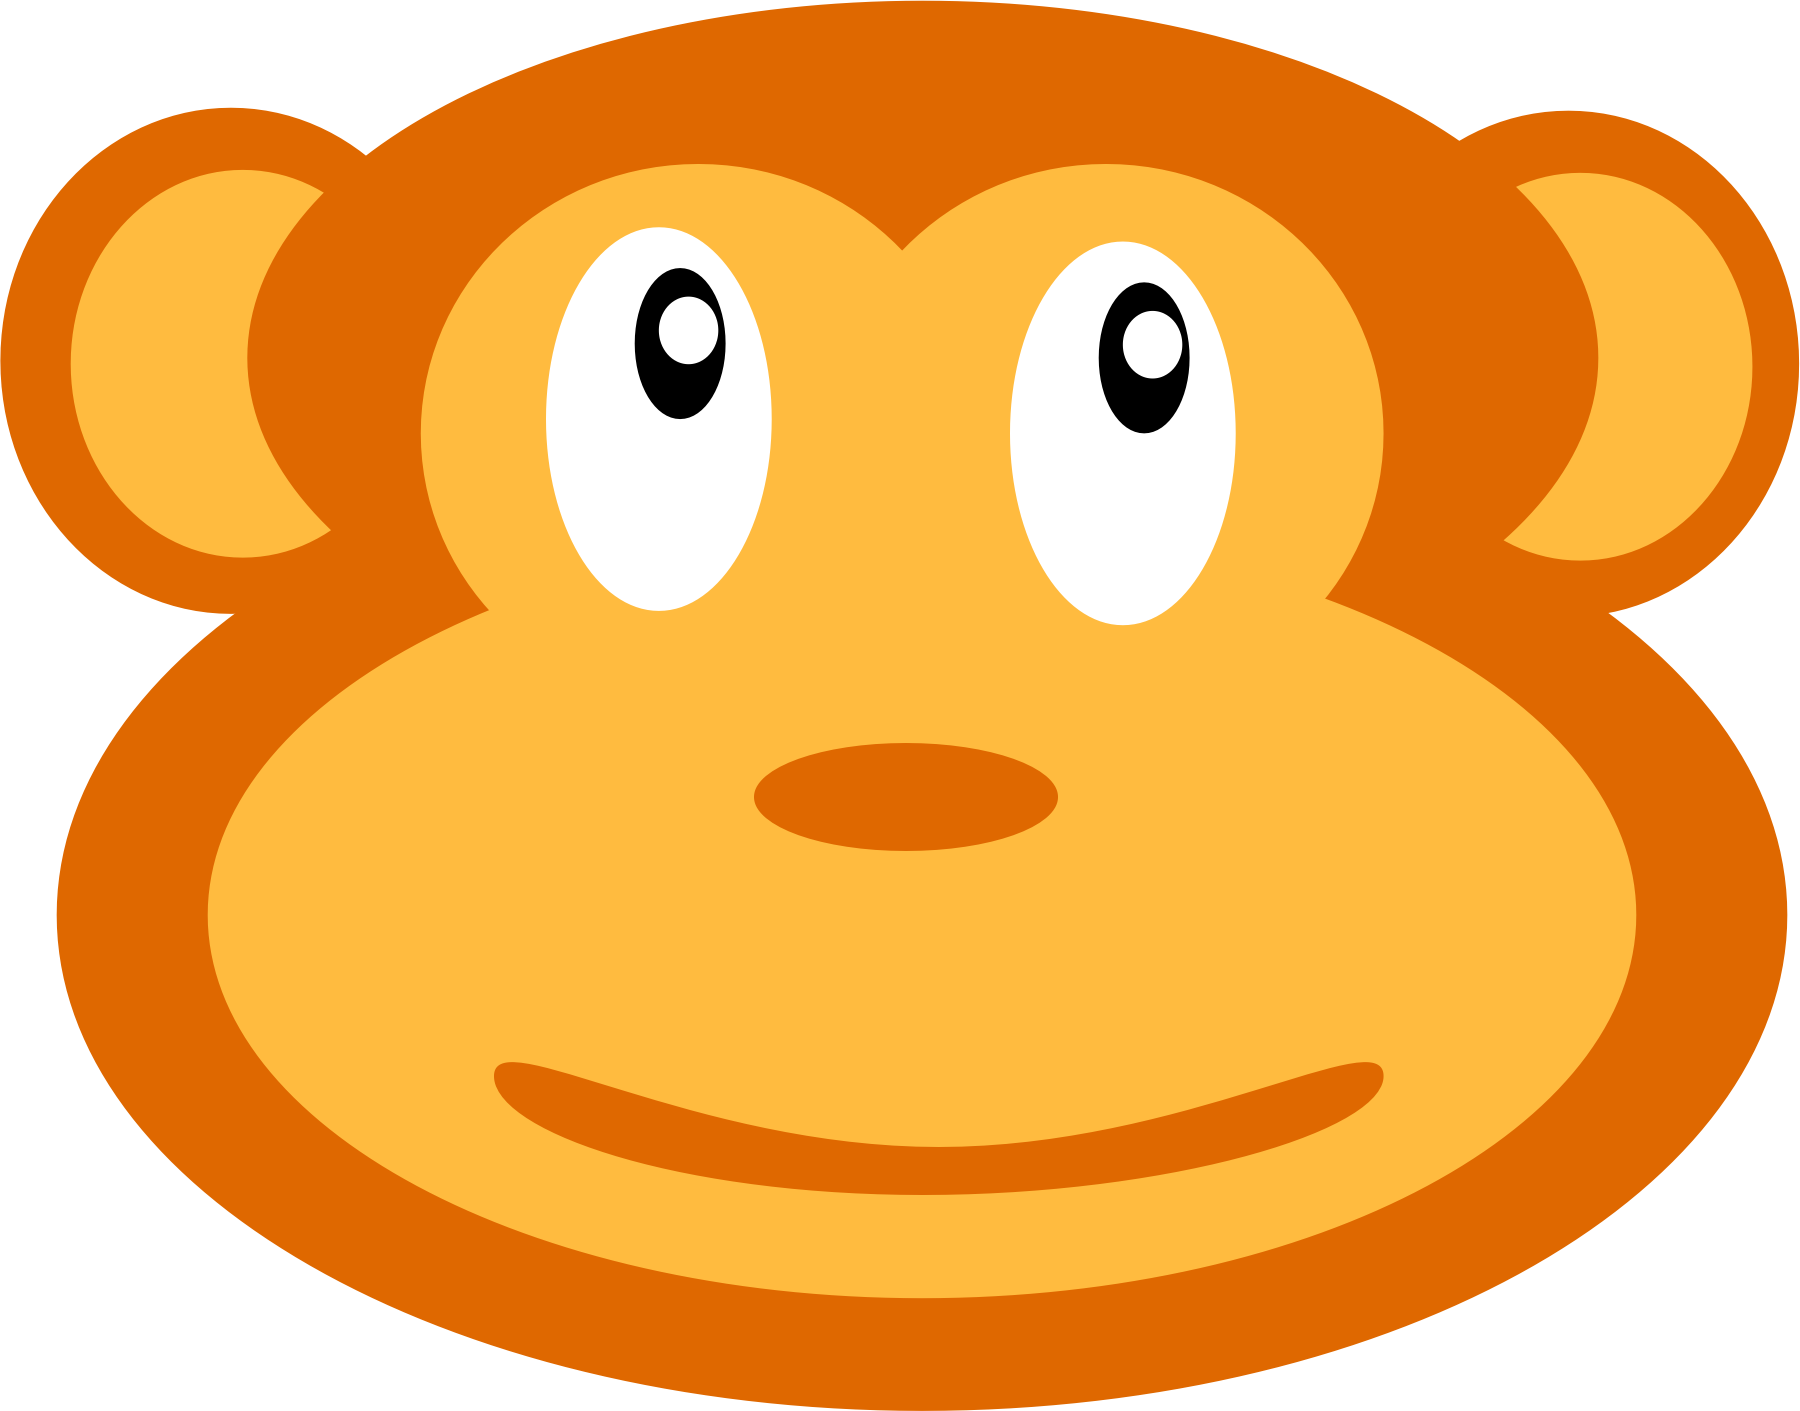 Monkey by dillonphang